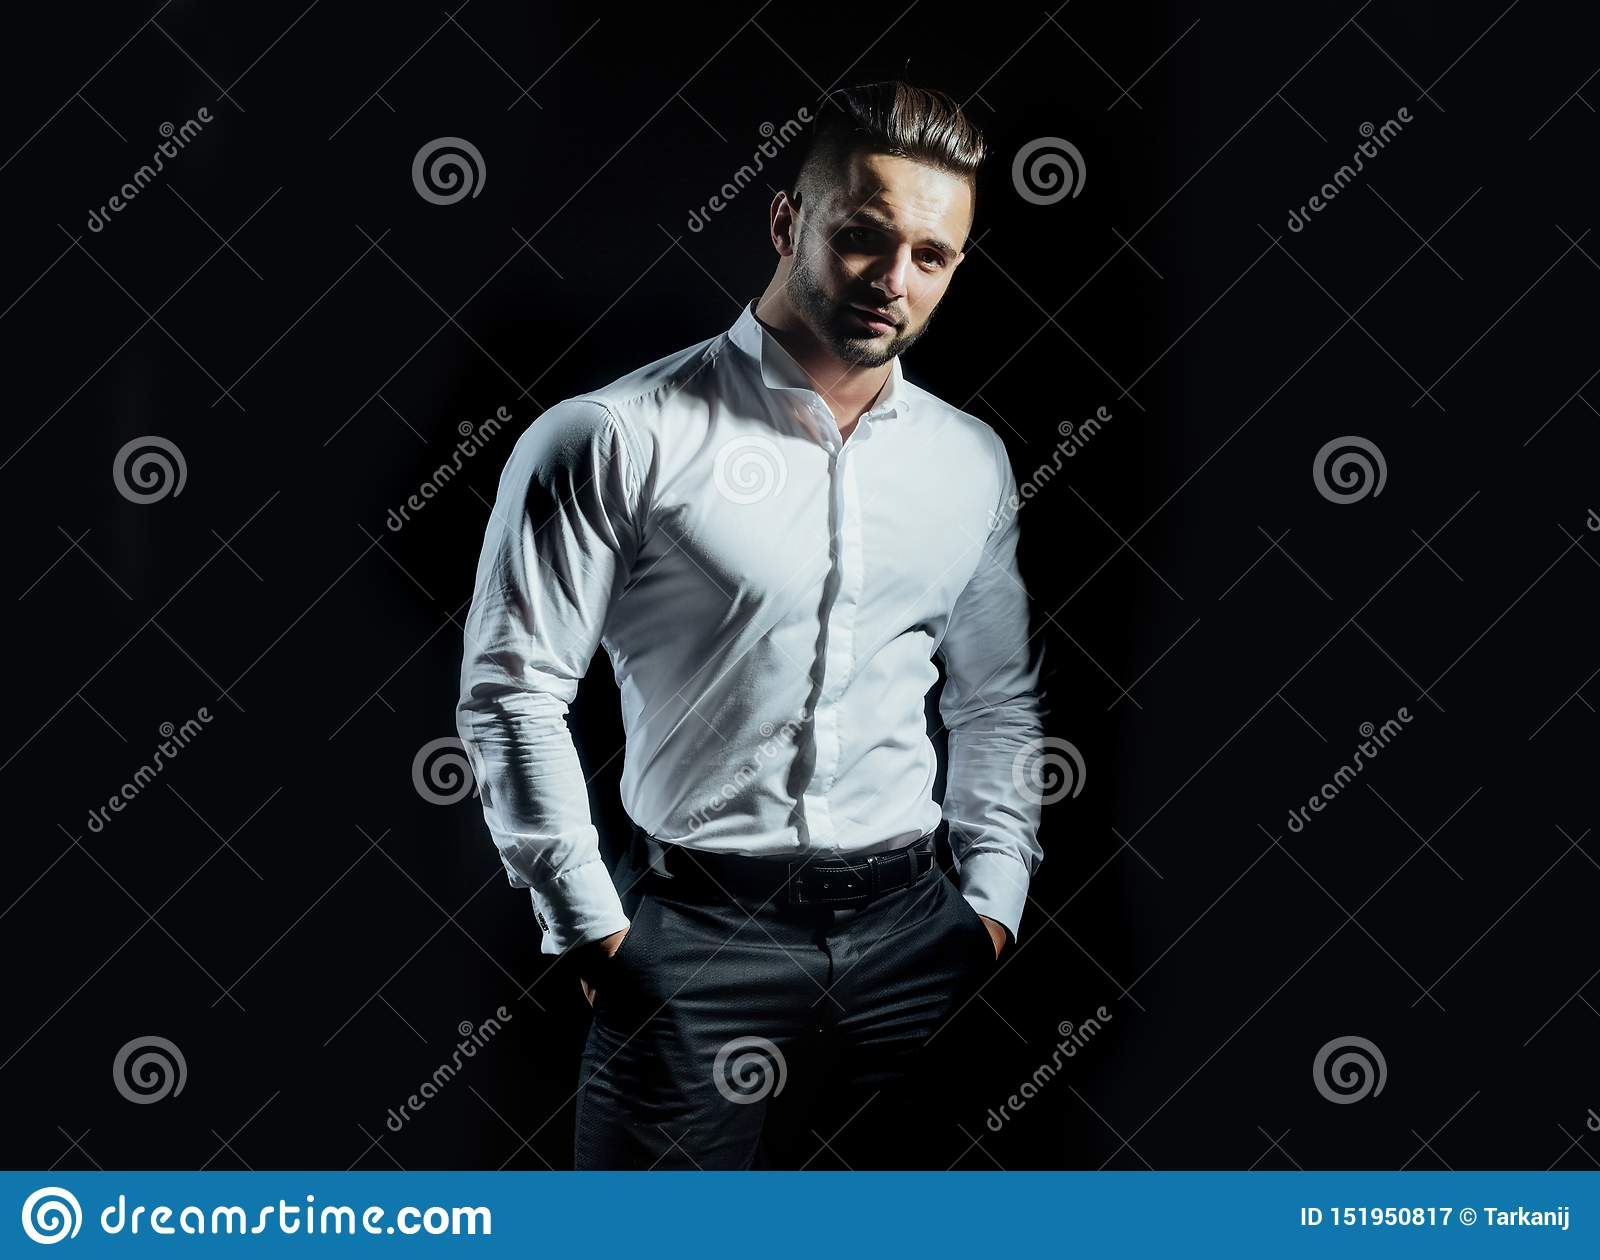 Handsome man standing with arms in pockets isolated on a black background. A handsome confident young man standing and